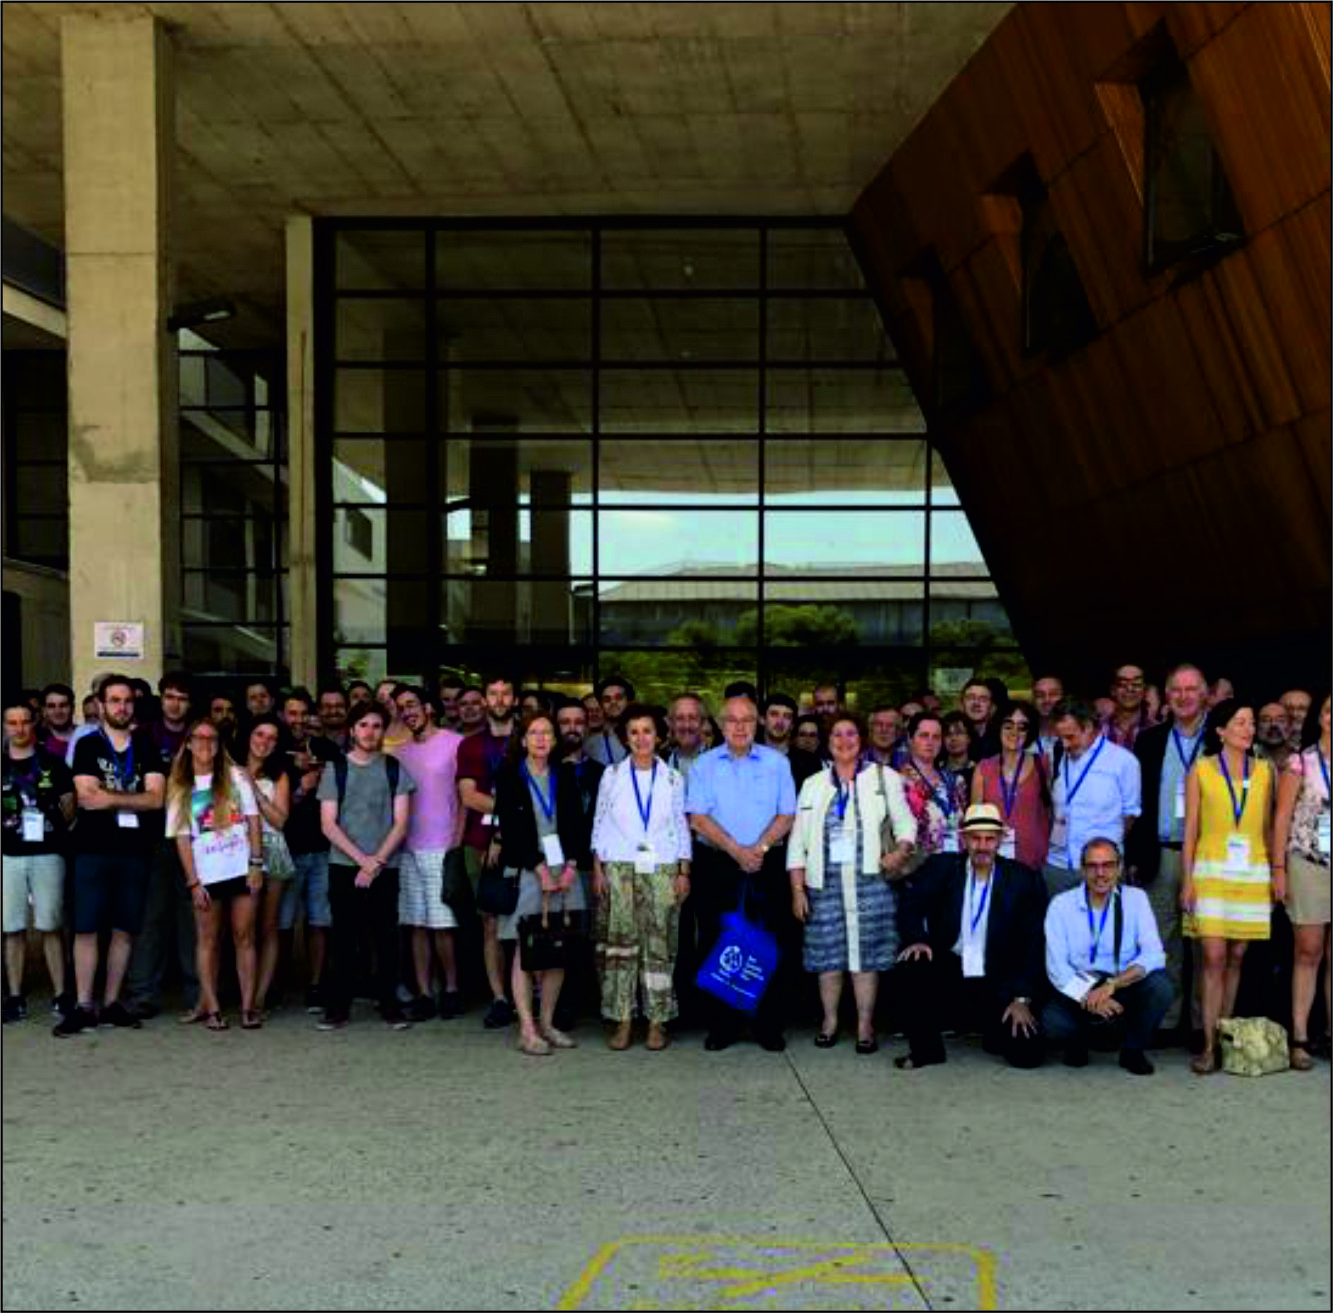 Spanish Royal Physics Society Meeting, July 15-21, Zaragoza (Spain)